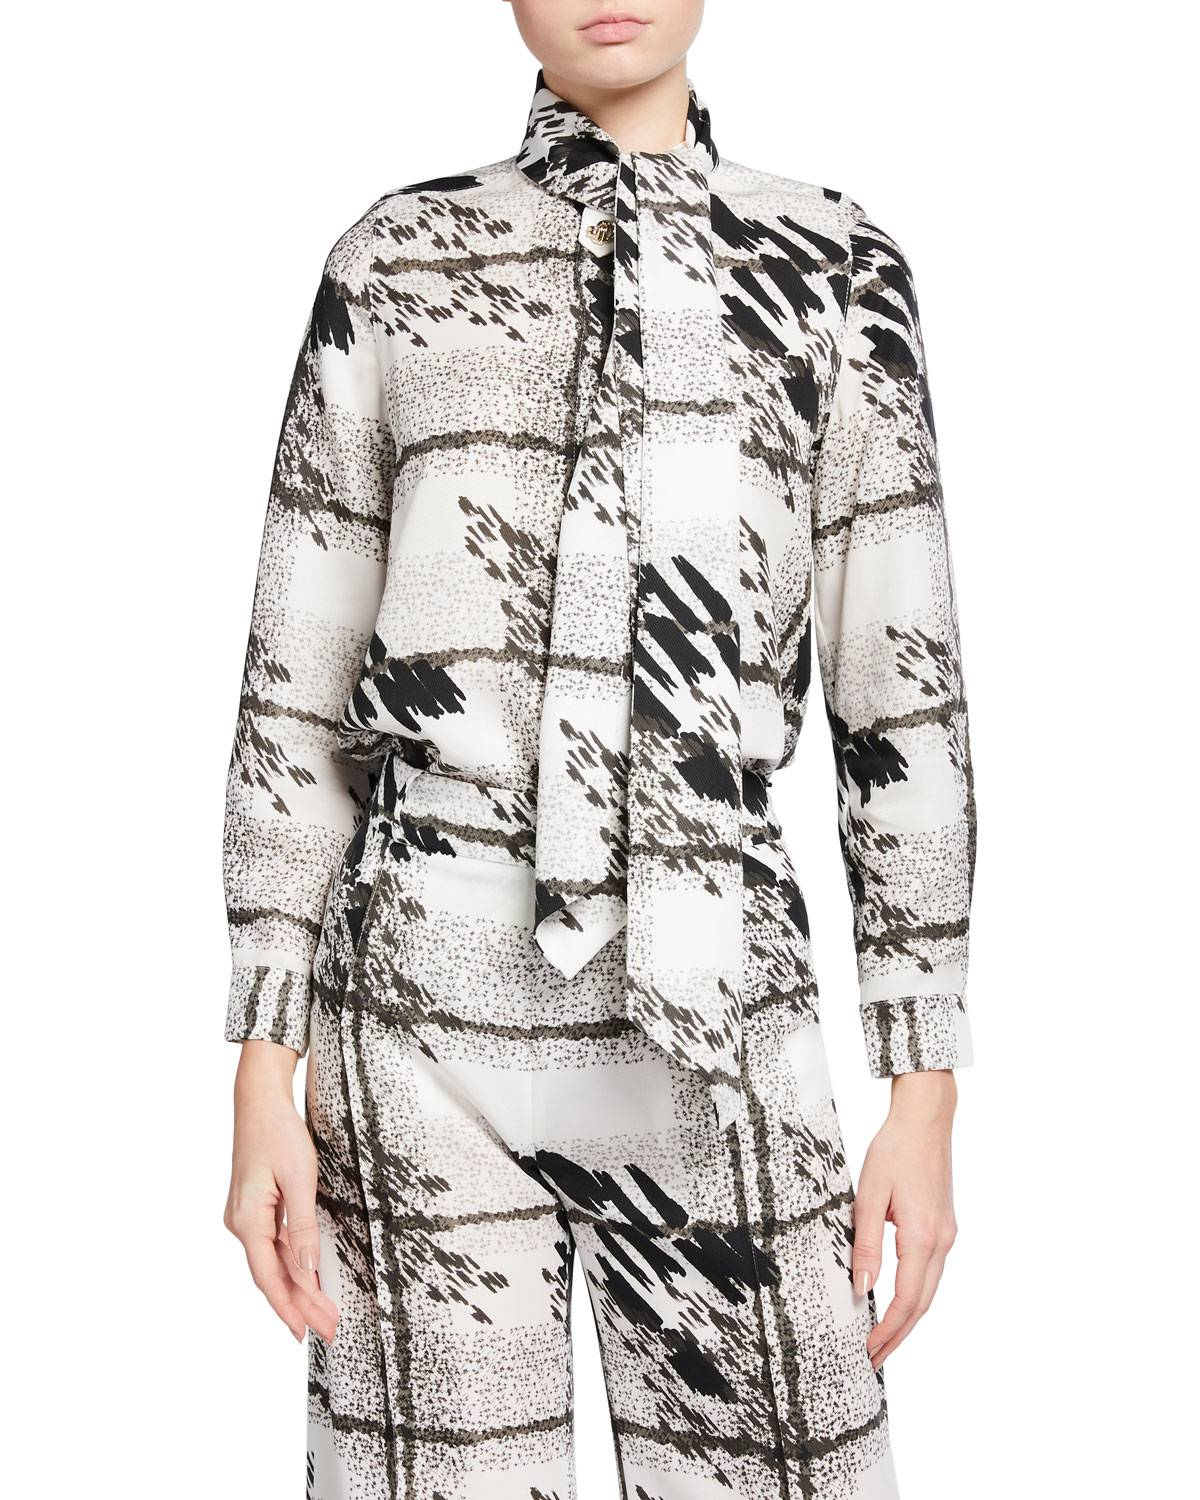 Pearl Printed Blouse with Neck Scarf - Size: 10 UK (6 US)